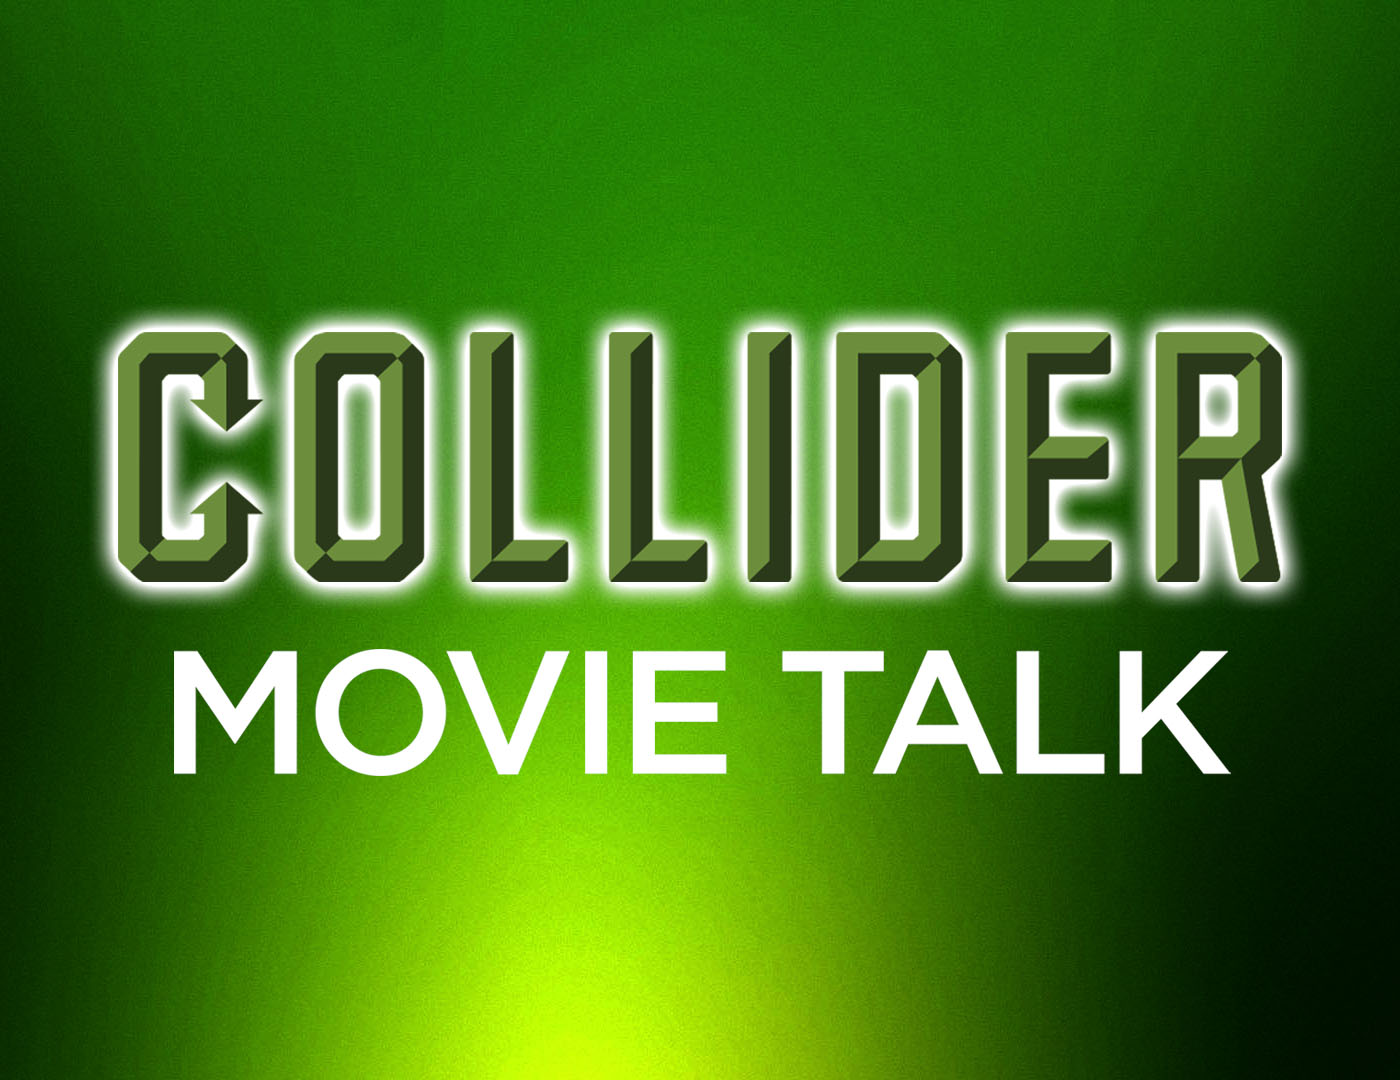 Collider Movie Talk - The Rock Teams With Universal For Robert Ludlum Movie Universe